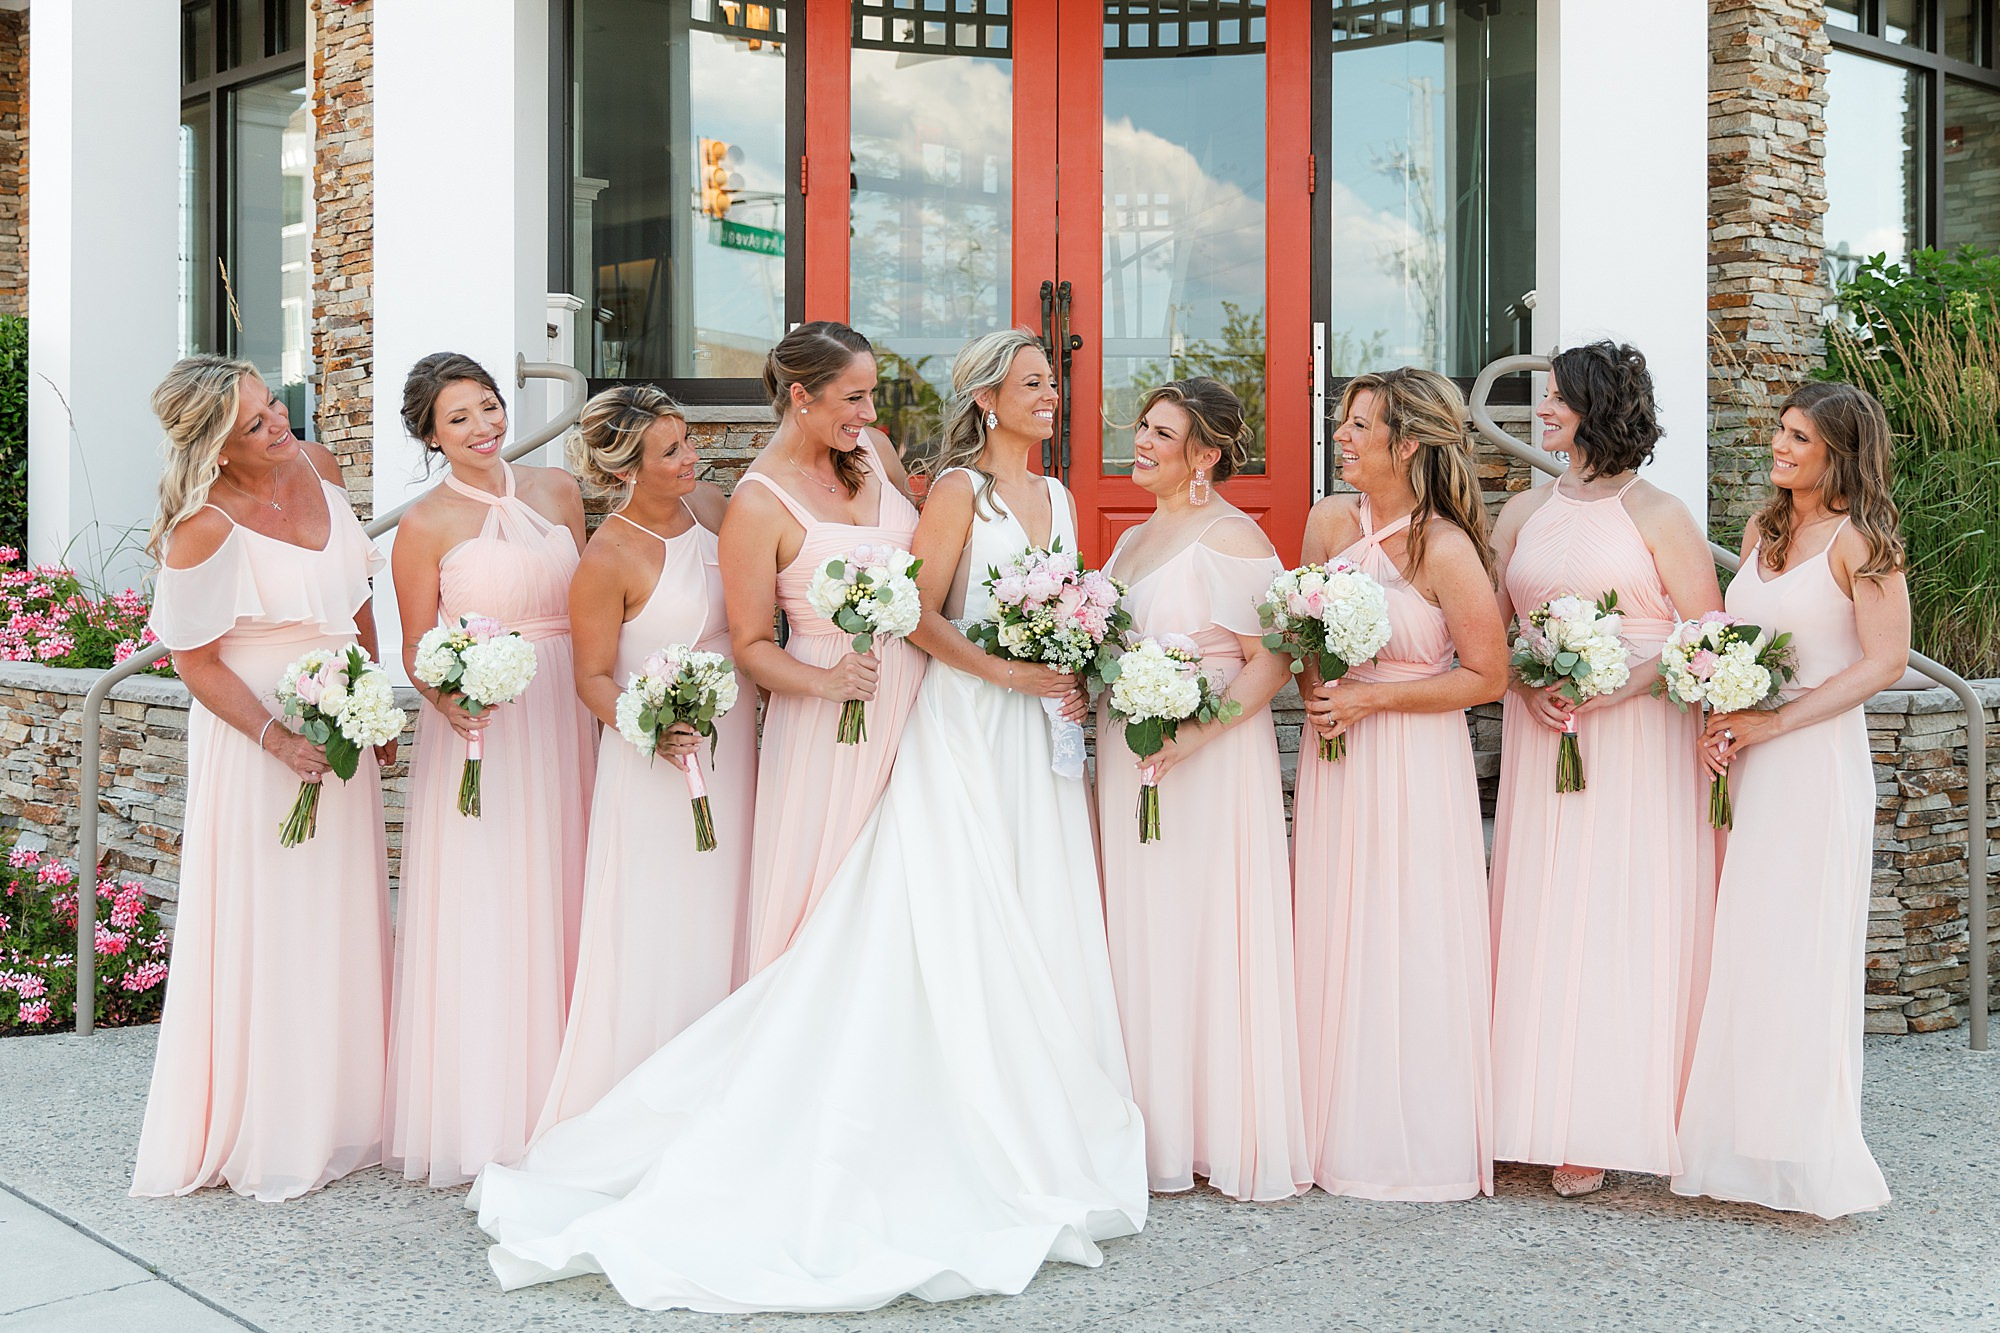 Natural and Vibrant Wedding Photography at the Reeds in Stone Harbor NJ by Magdalena Studios 0030